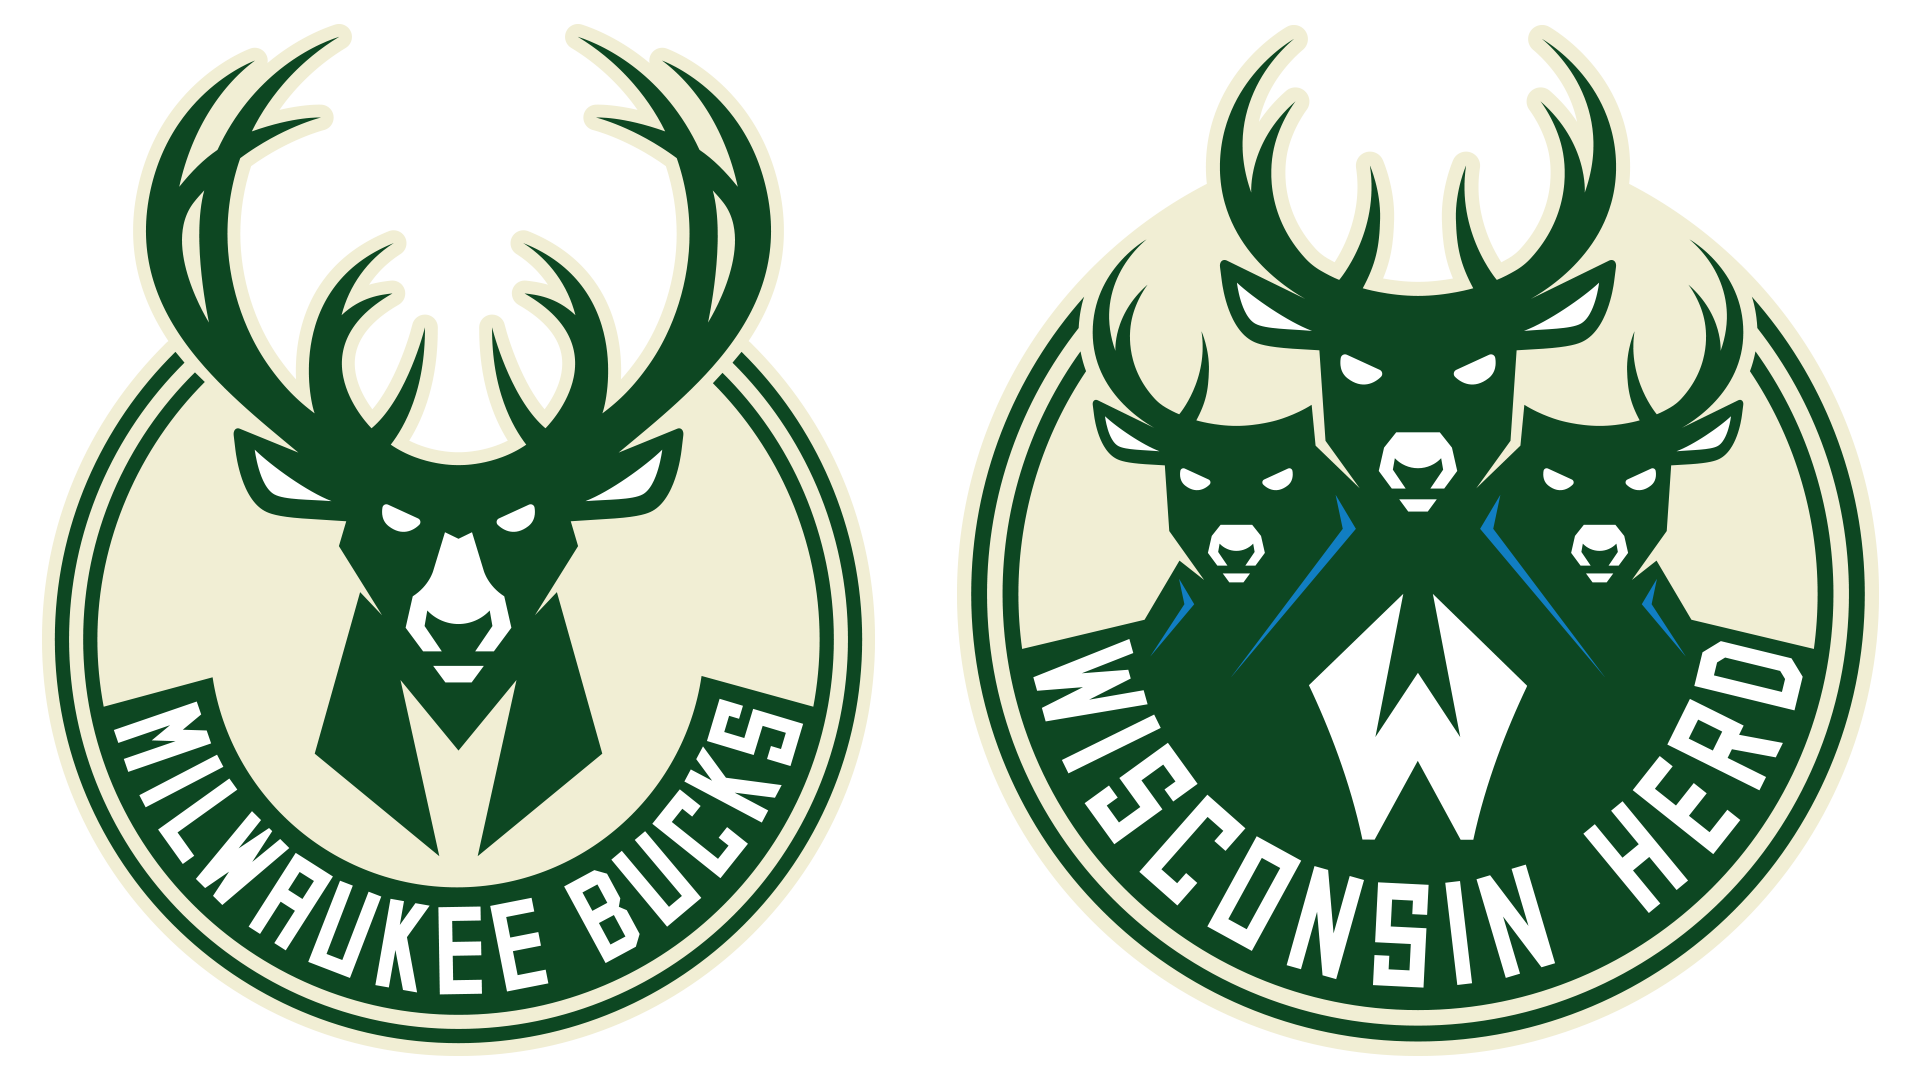 Basketball crest clipart vector transparent stock Logos – Wisconsin Herd vector transparent stock